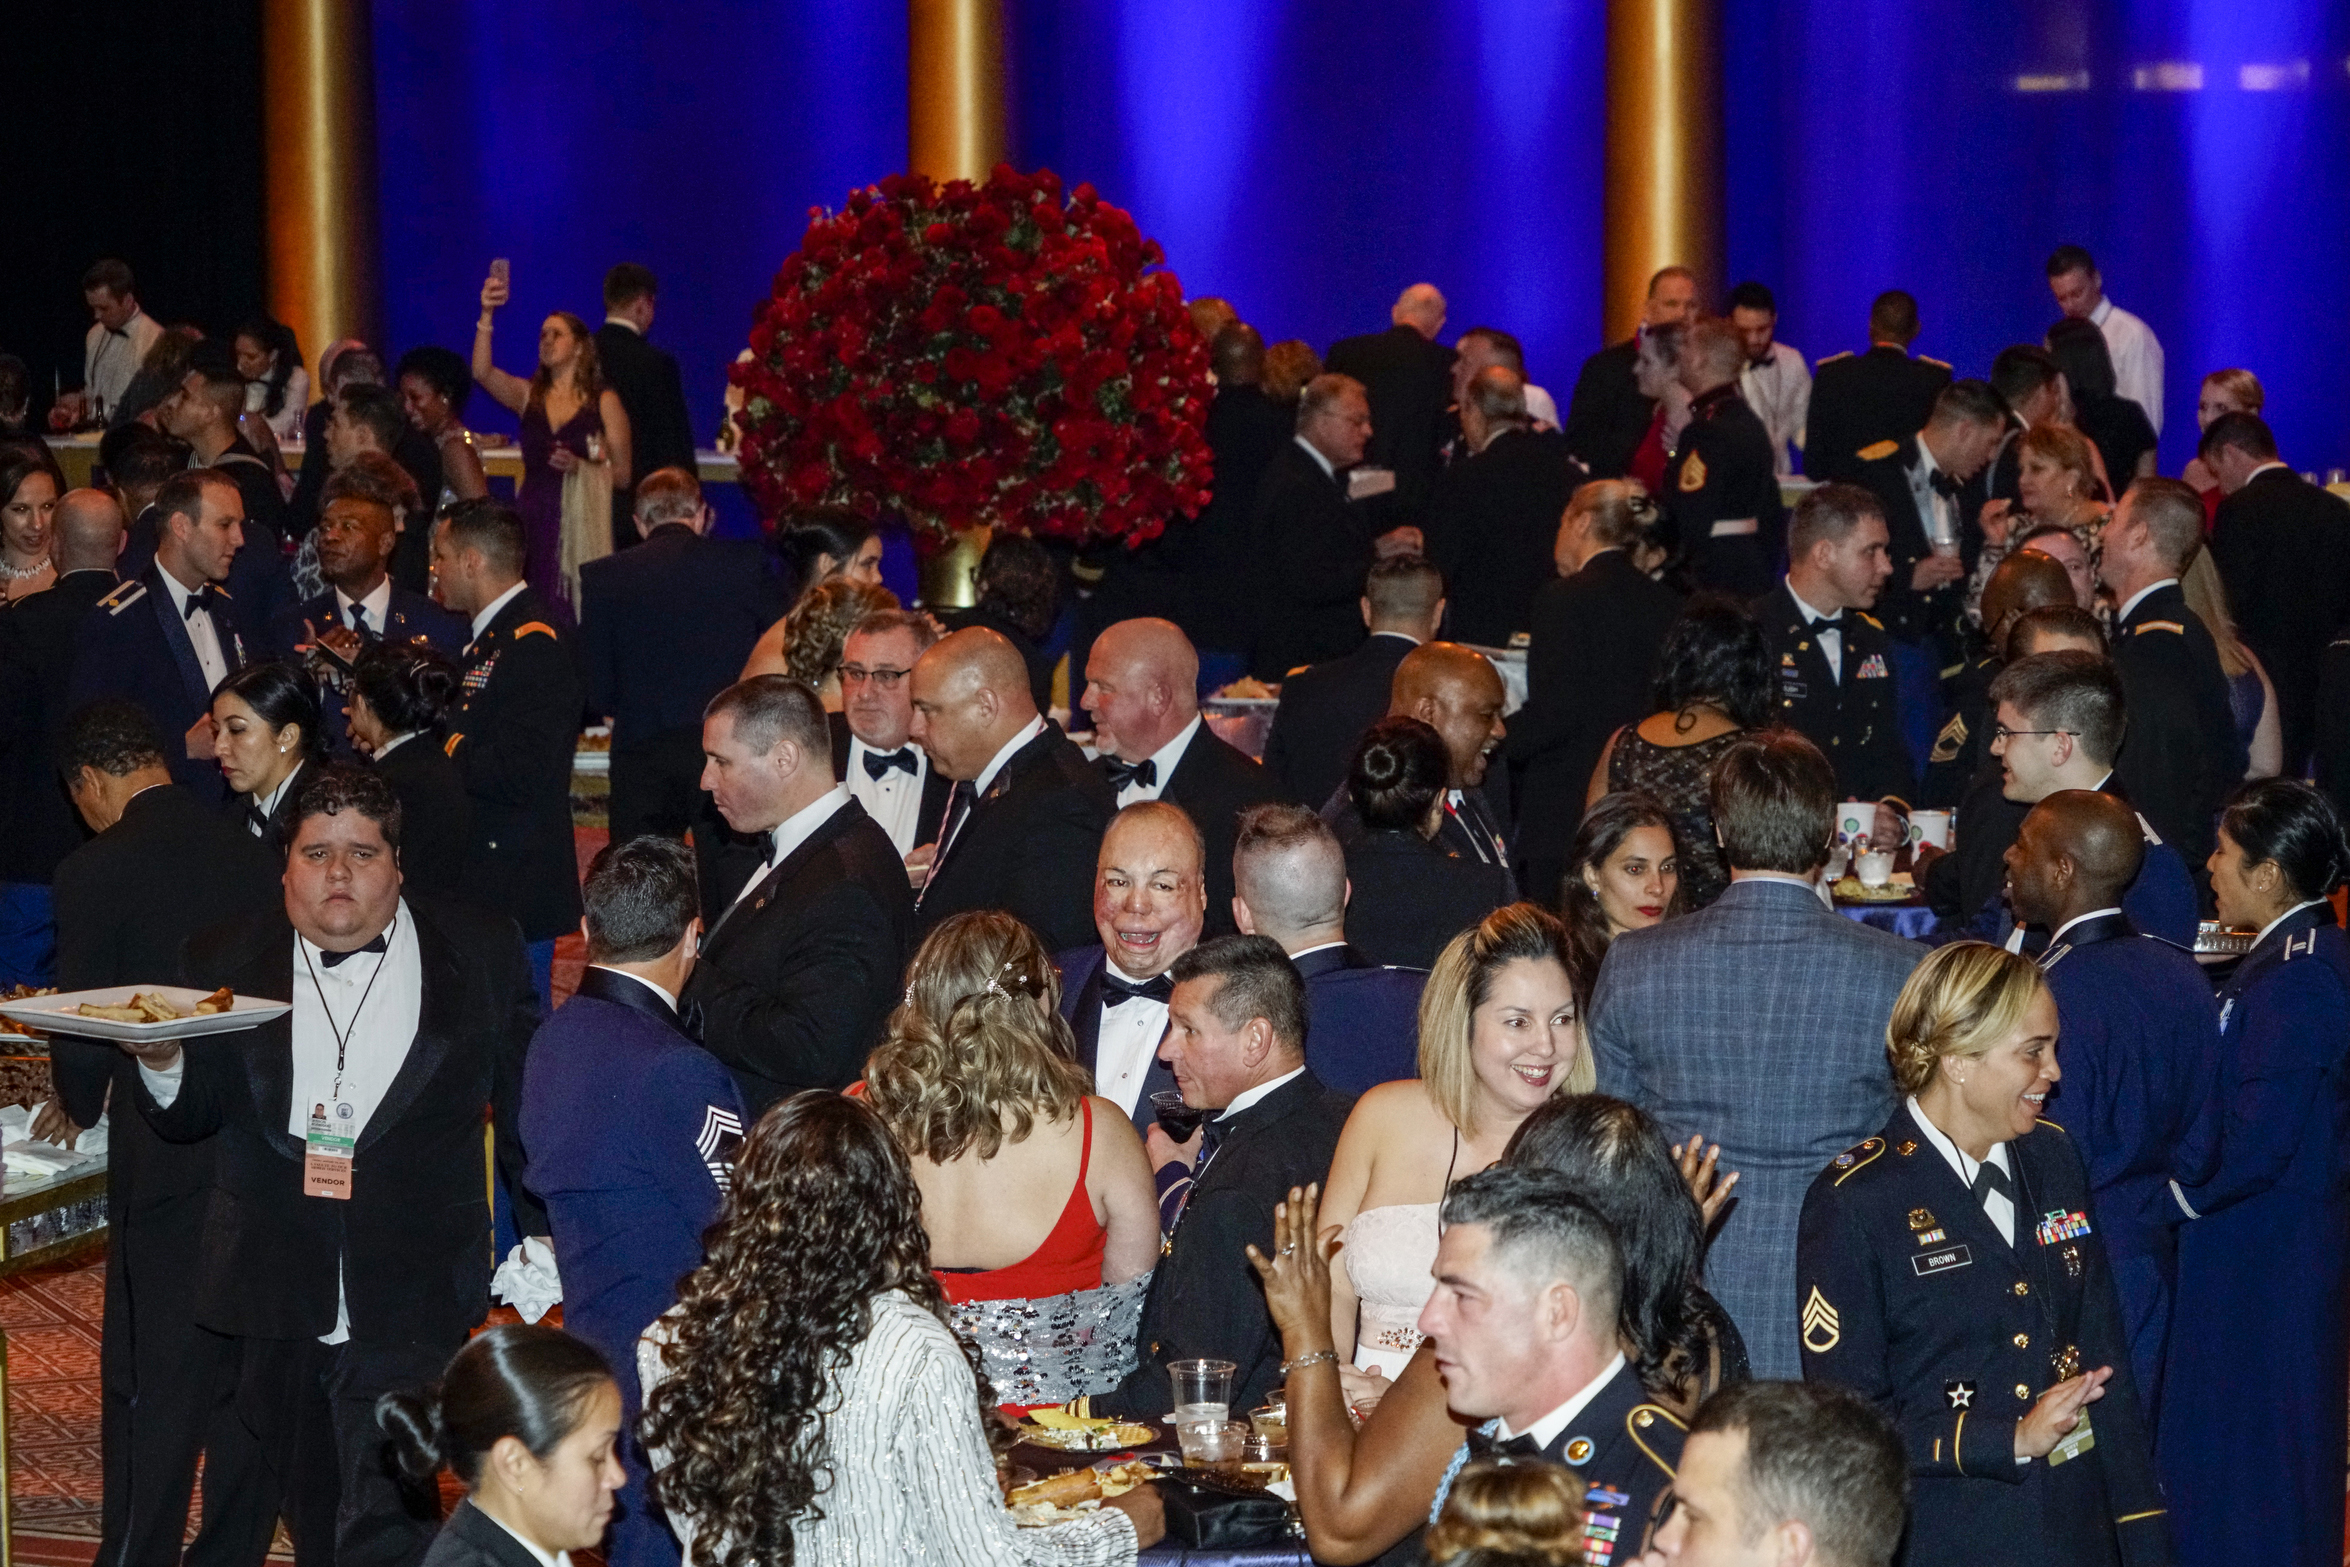 Members of the US Armed Forces mingle at the Salute to Our Armed Services Inaugural Ball at the National Building Museum in Washington, D.C., on Jan 20, 2017.